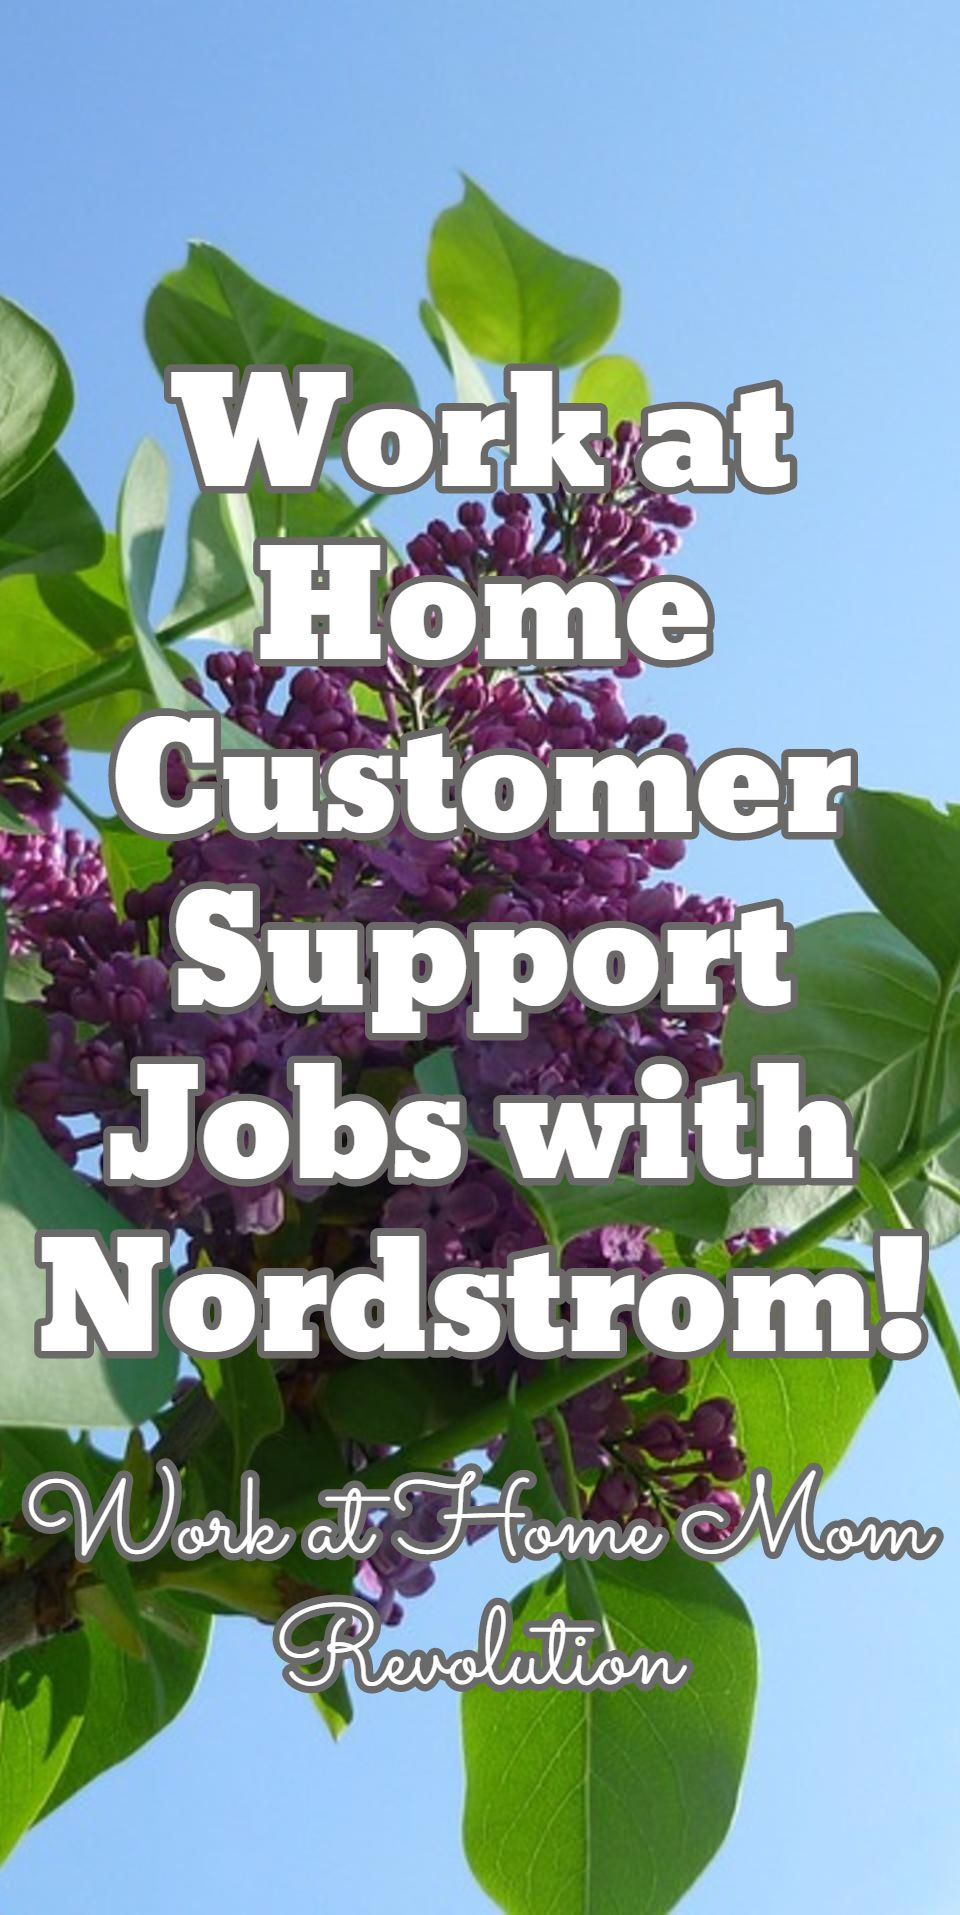 Nordstrom Hiring Work at Home Customer Support Jobs